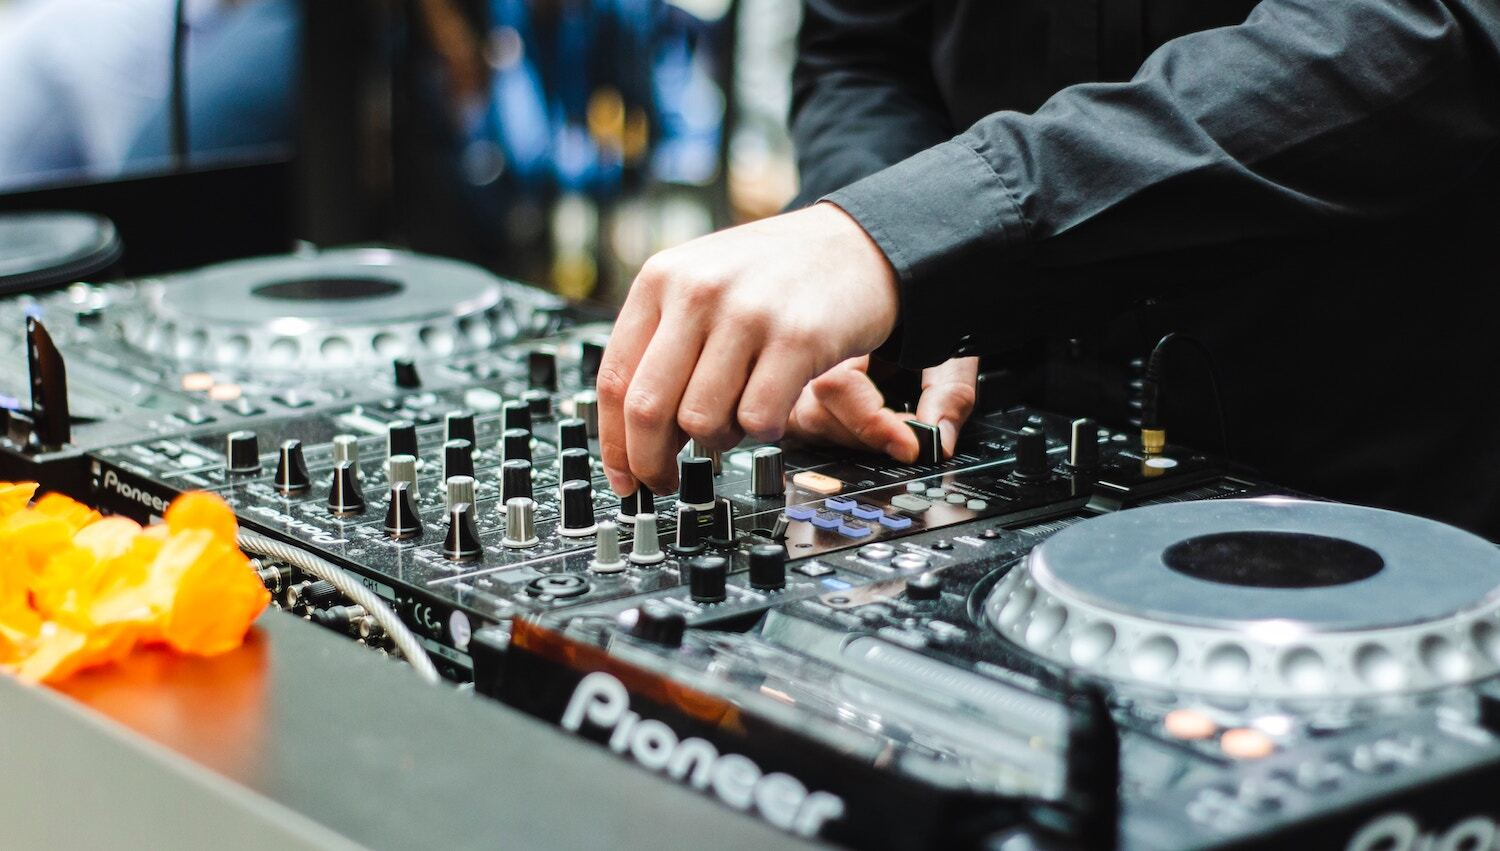 The best DJ classes in Singapore